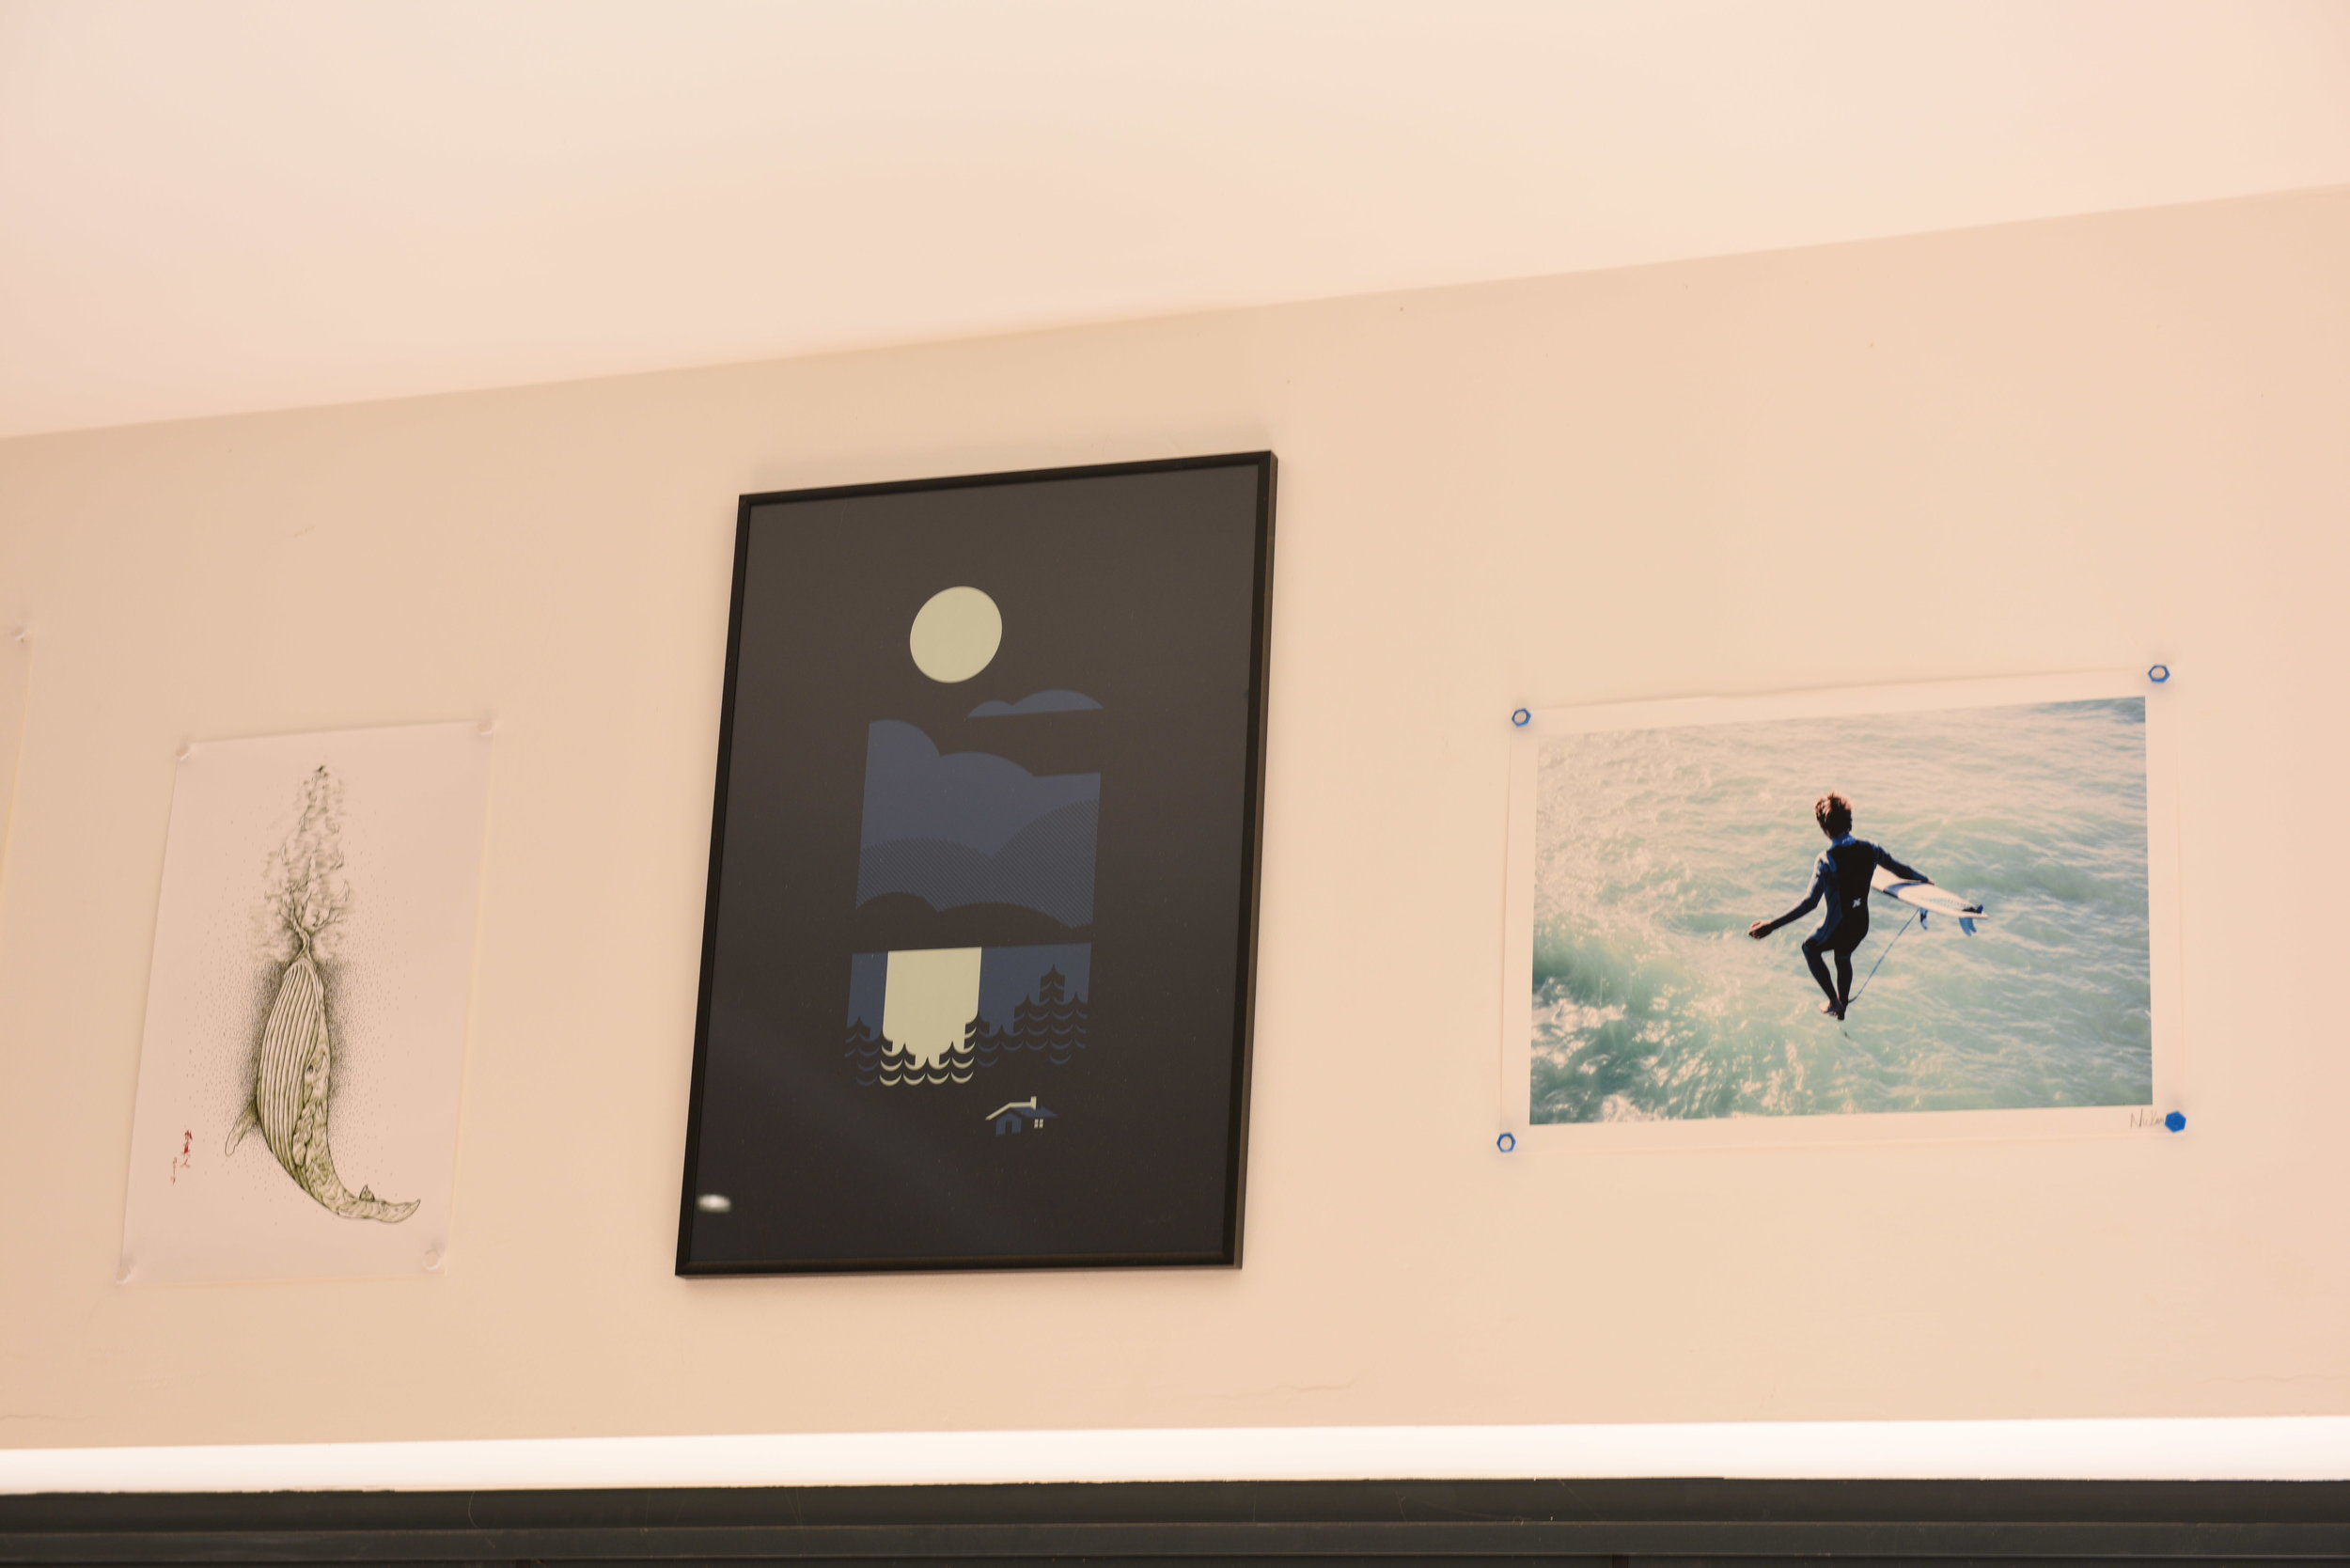 Cultivation of other artists' work on walls.